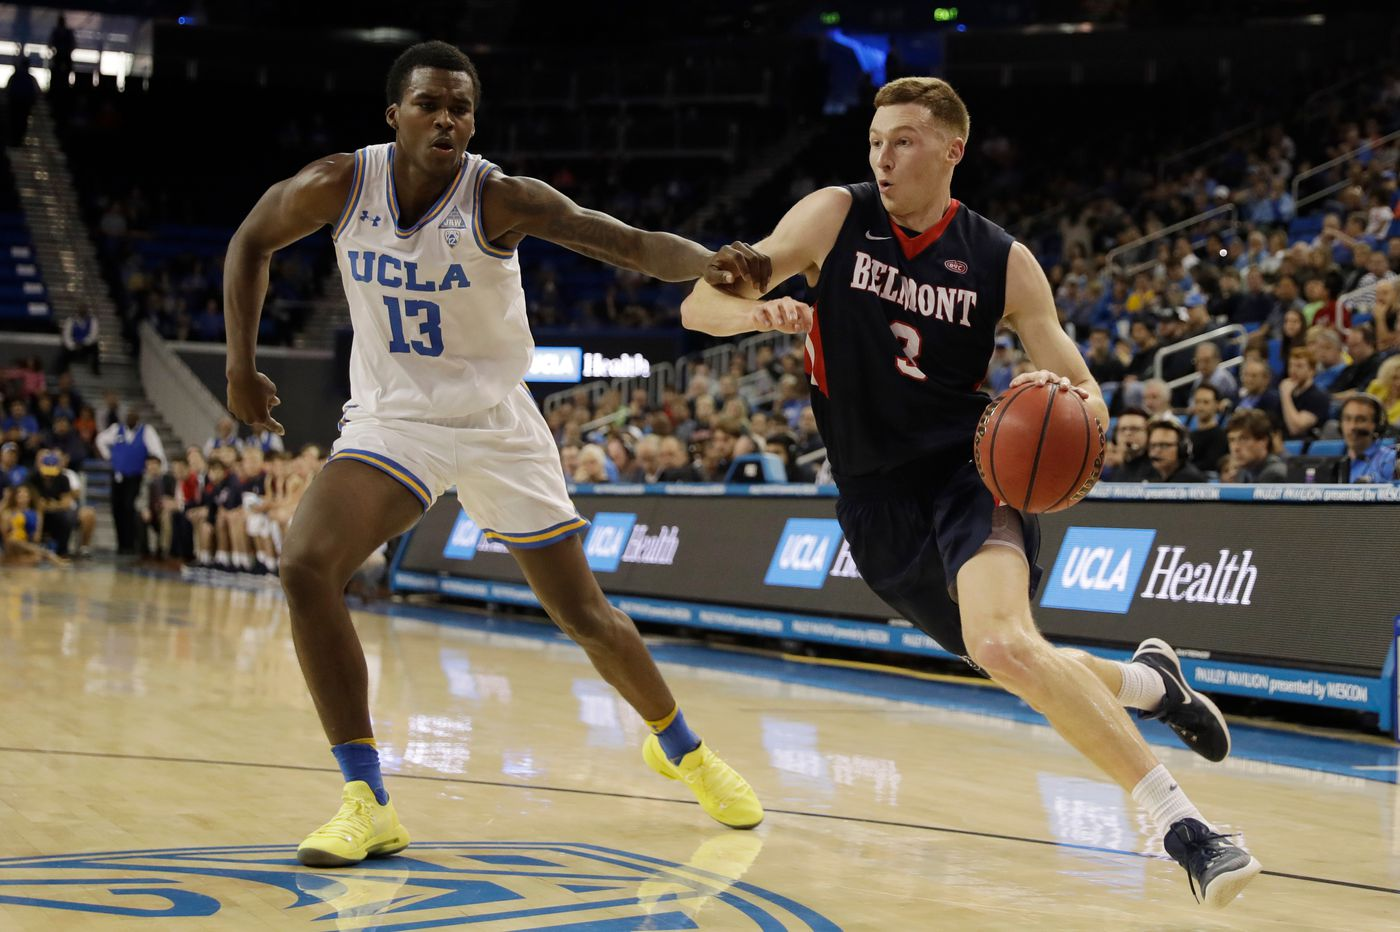 Temple-Belmont in NCAA Tournament: Lack of name recognition doesn't mean lack of talent or success for Bruins